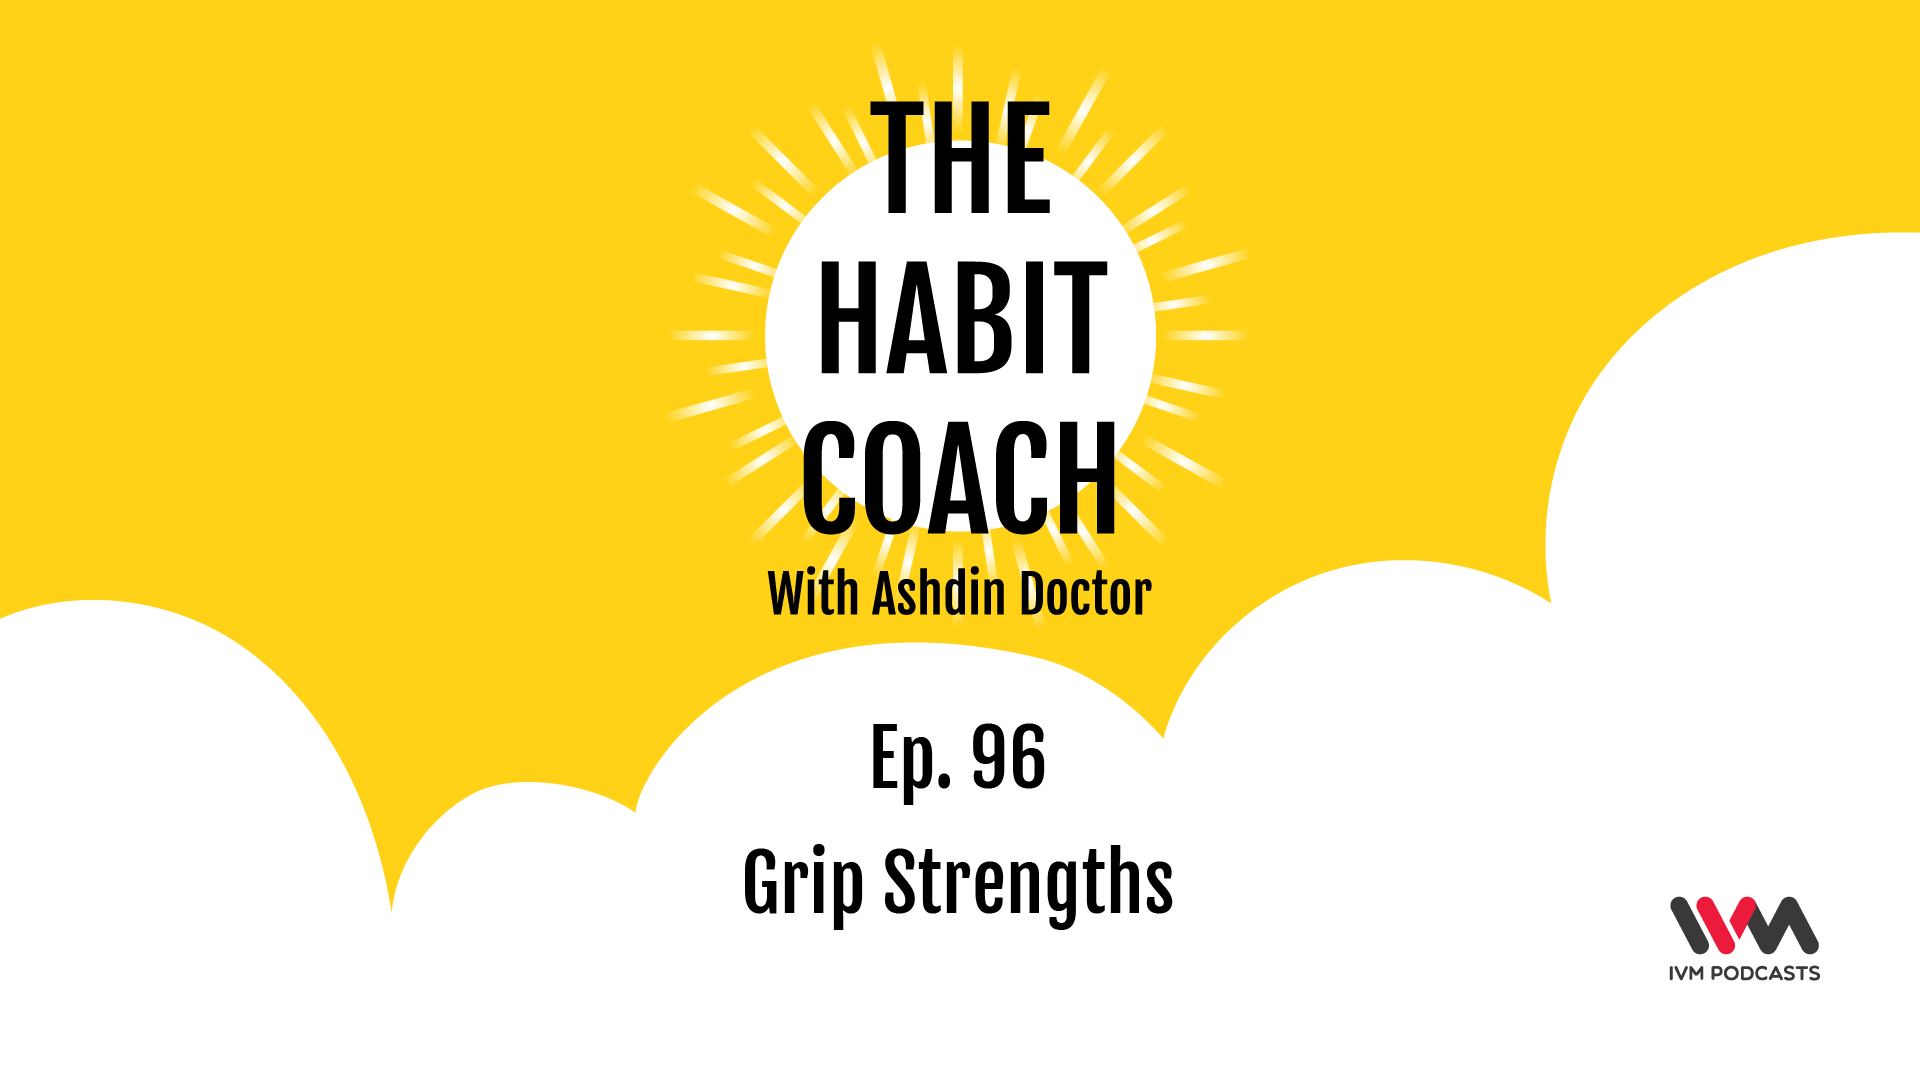 TheHabitCoachEpisode96.png